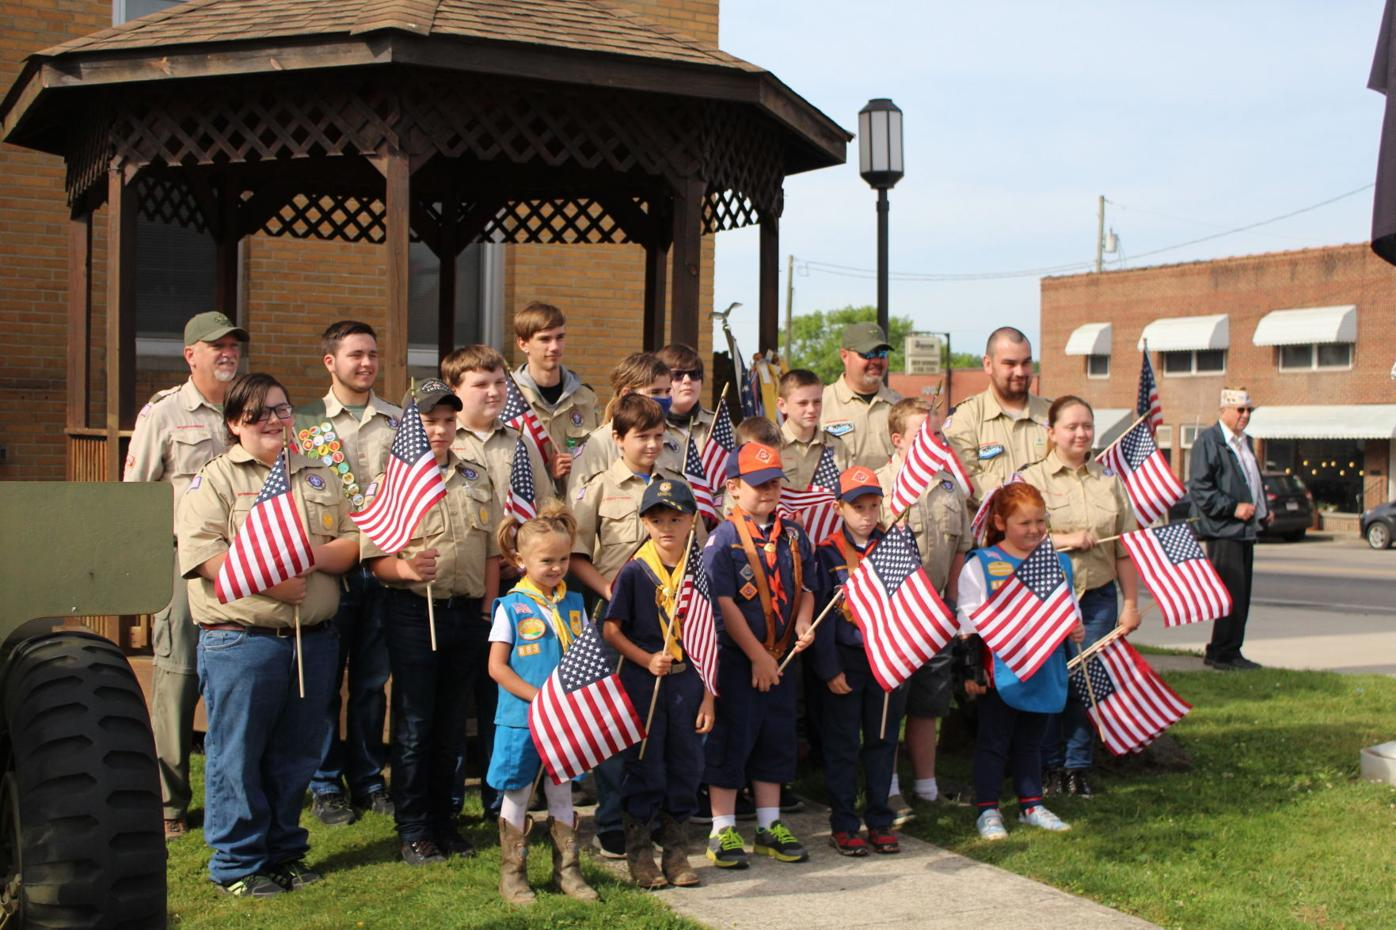 The Boys and Girls Scouts of McArthur